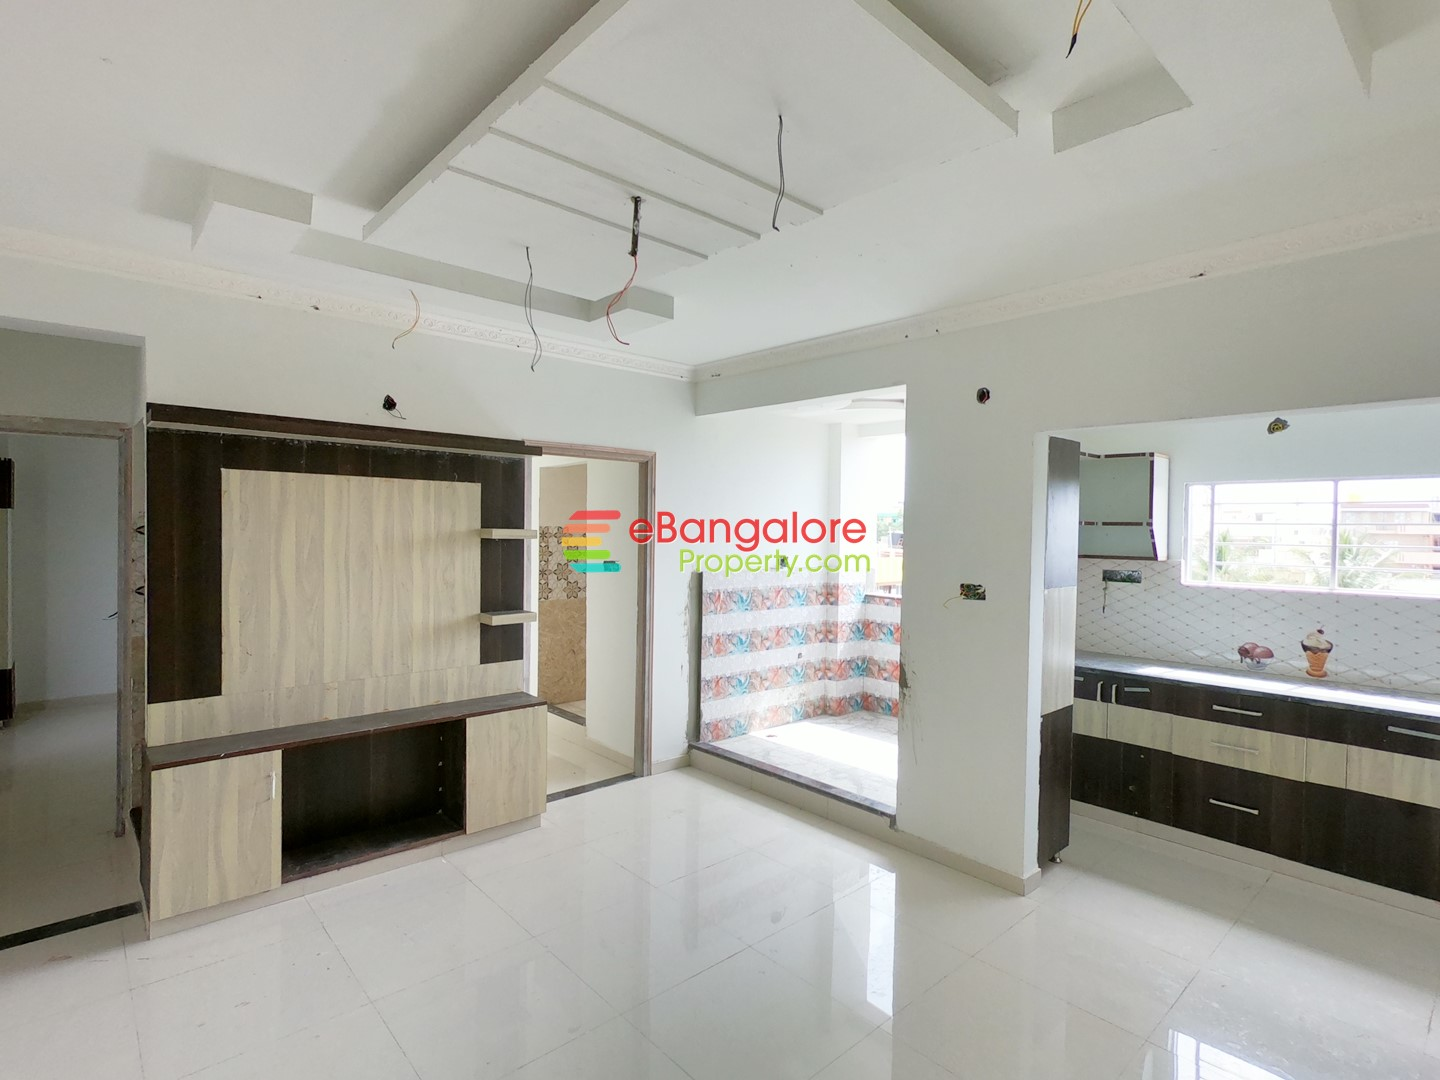 Electronic City 2 – New 9 Unit Rental Income Building For Sale – Semifurnished Units